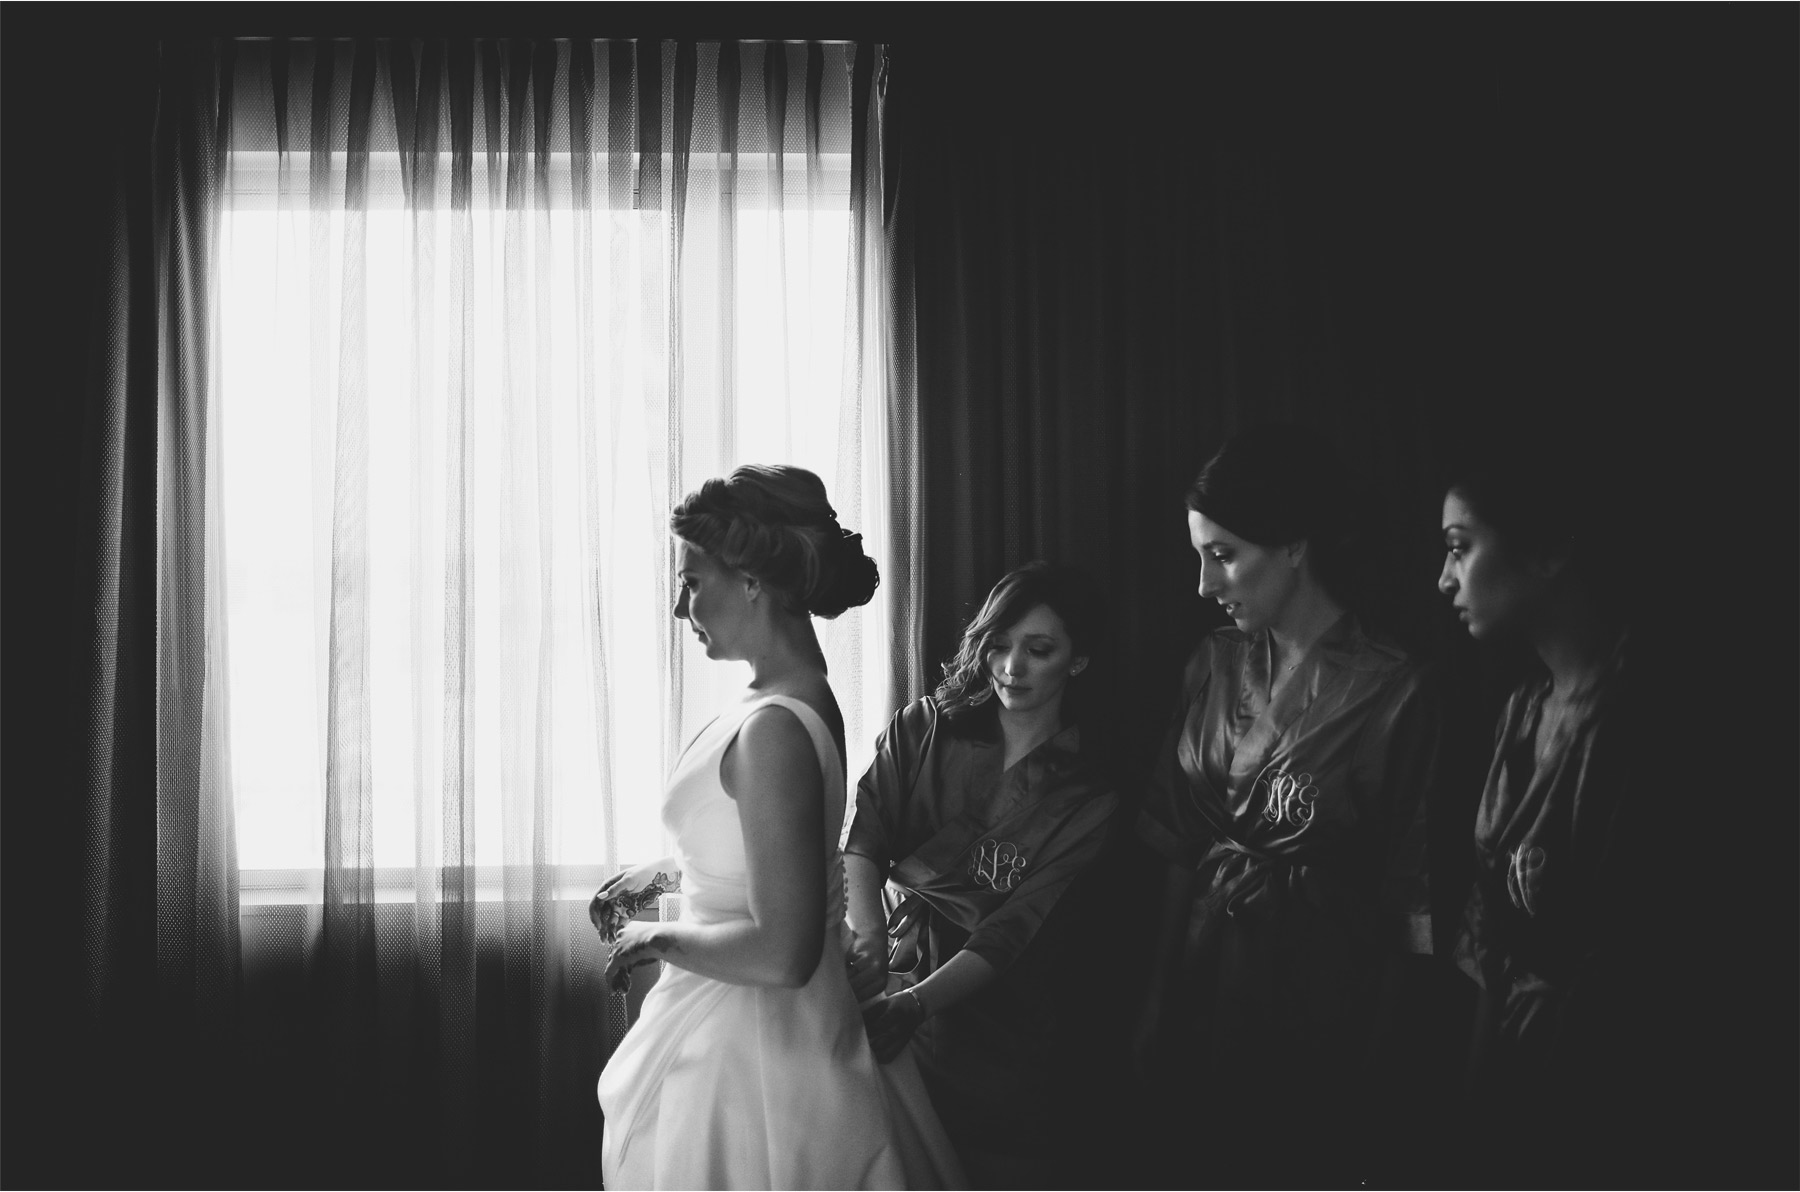 03-Bloomington-Minneapolis-Minnesota-Wedding-Photographer-by-Andrew-Vick-Photography-JW-Marriott-Mall-of-America-MOA-Spring-Getting-Ready-Bride-Bridesmaids-Robes-Henna-Hotel-Black-and-White-Rachel-and-Venu.jpg